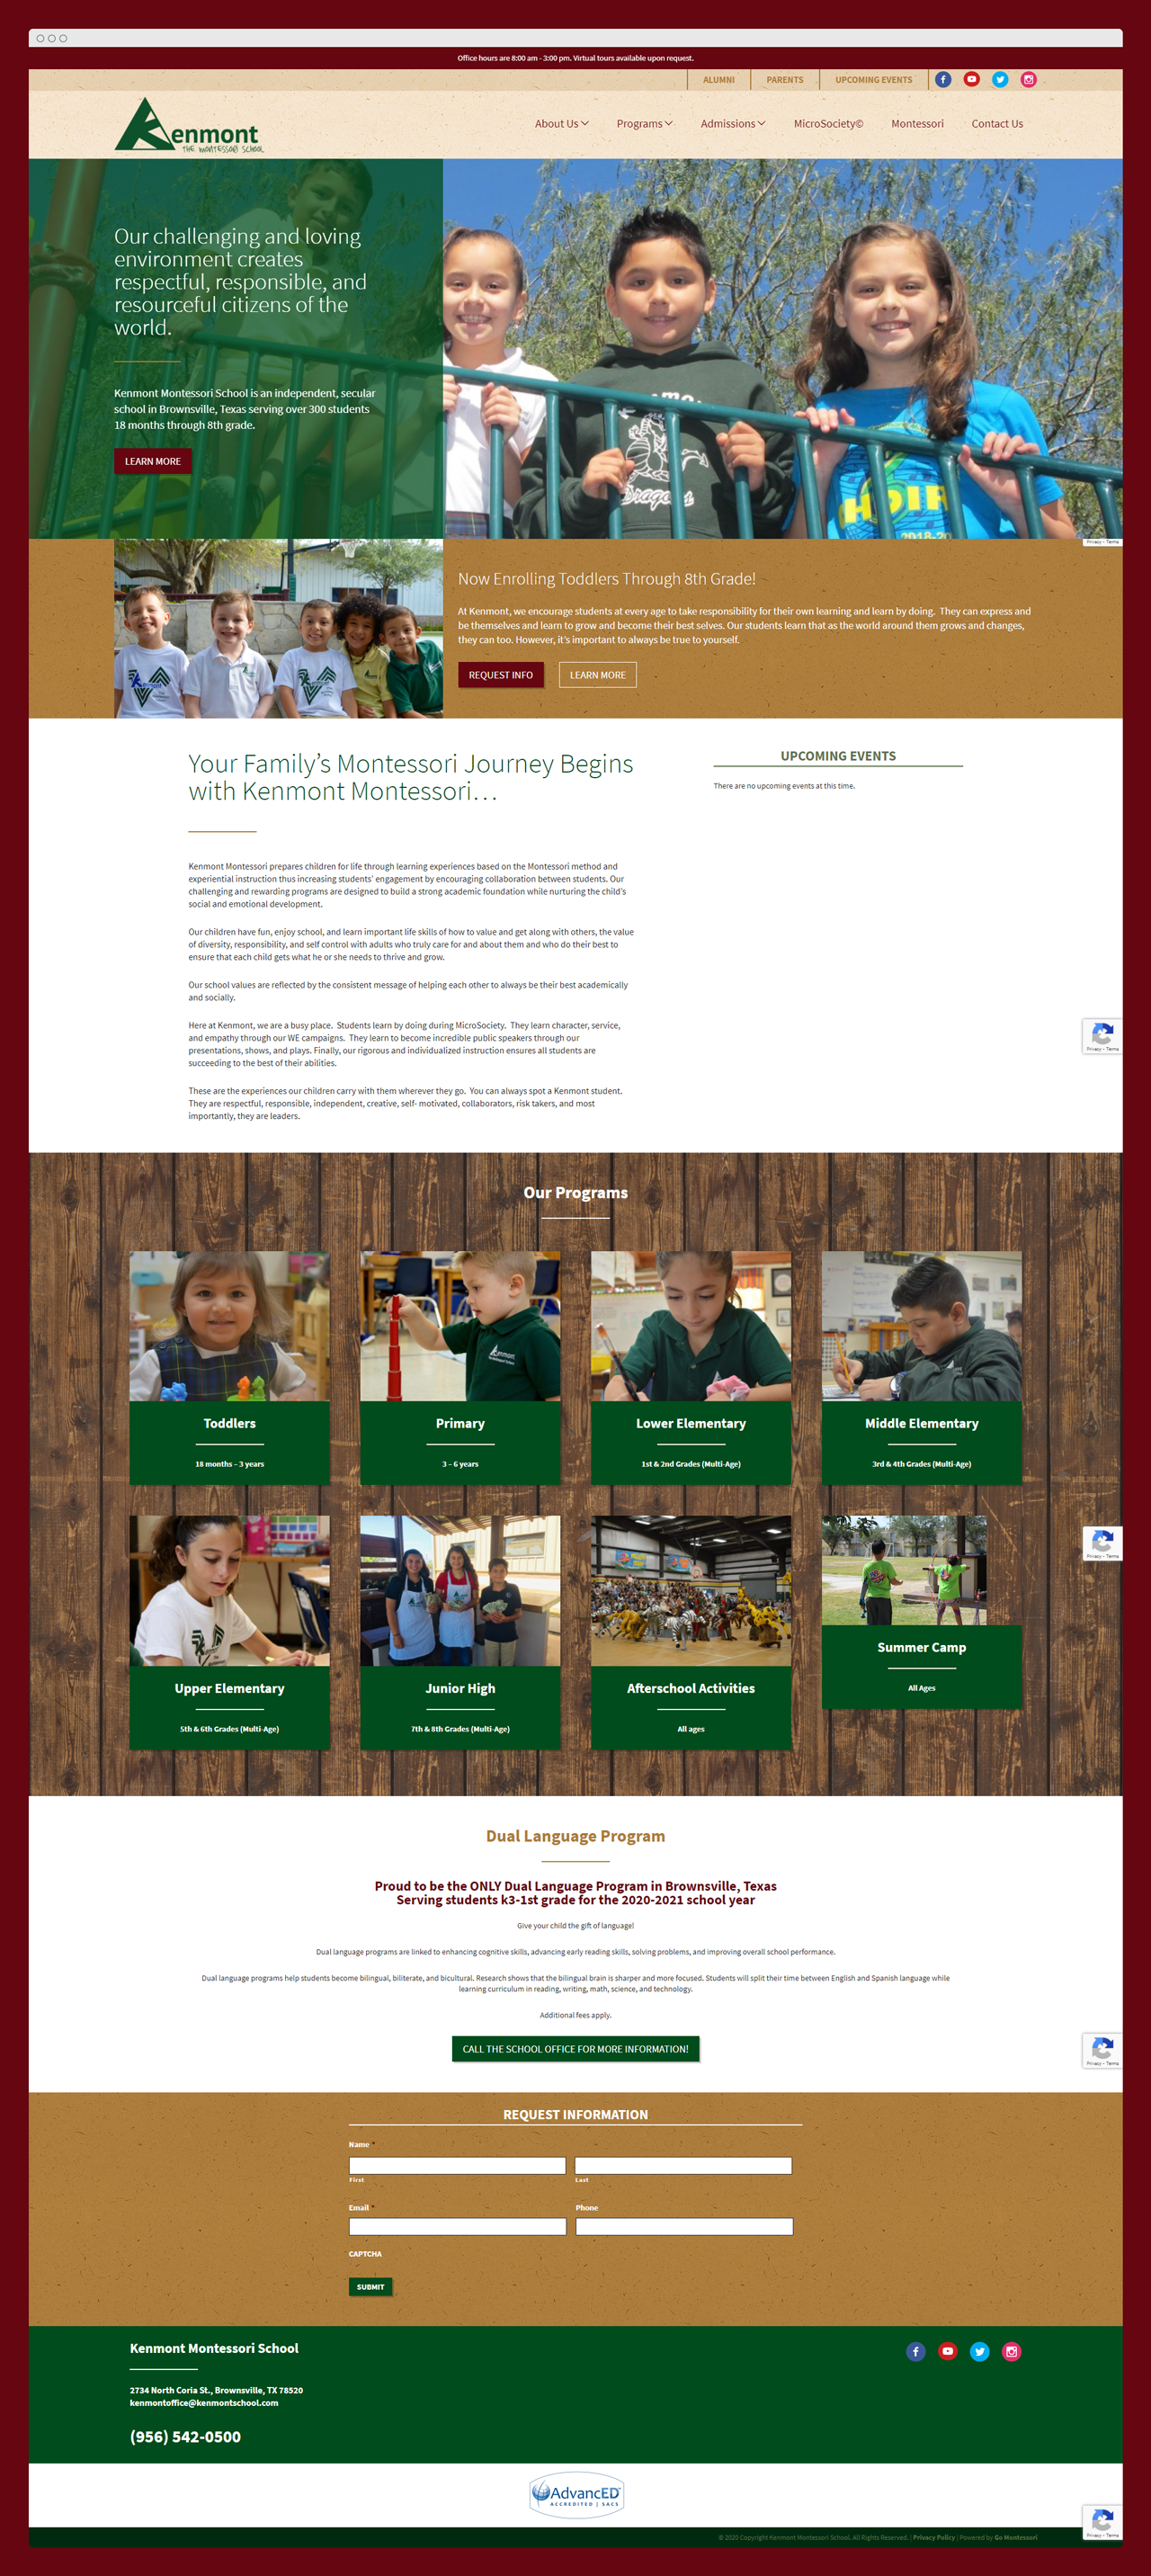 Go Montessori custom site design for Kenmont Montessori School